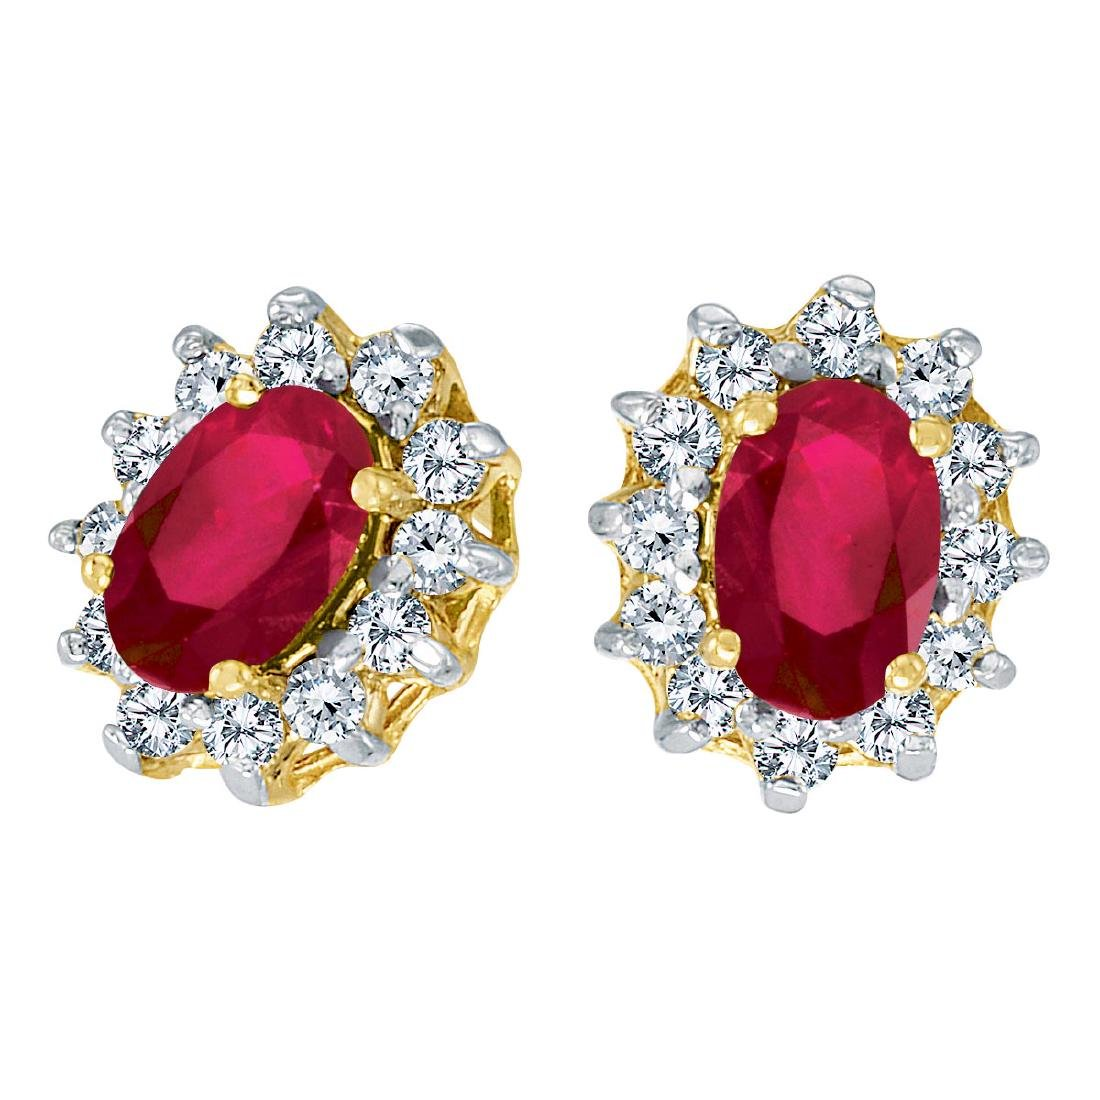 Certified 10k Yellow Gold Oval Ruby and .25 total CTW D